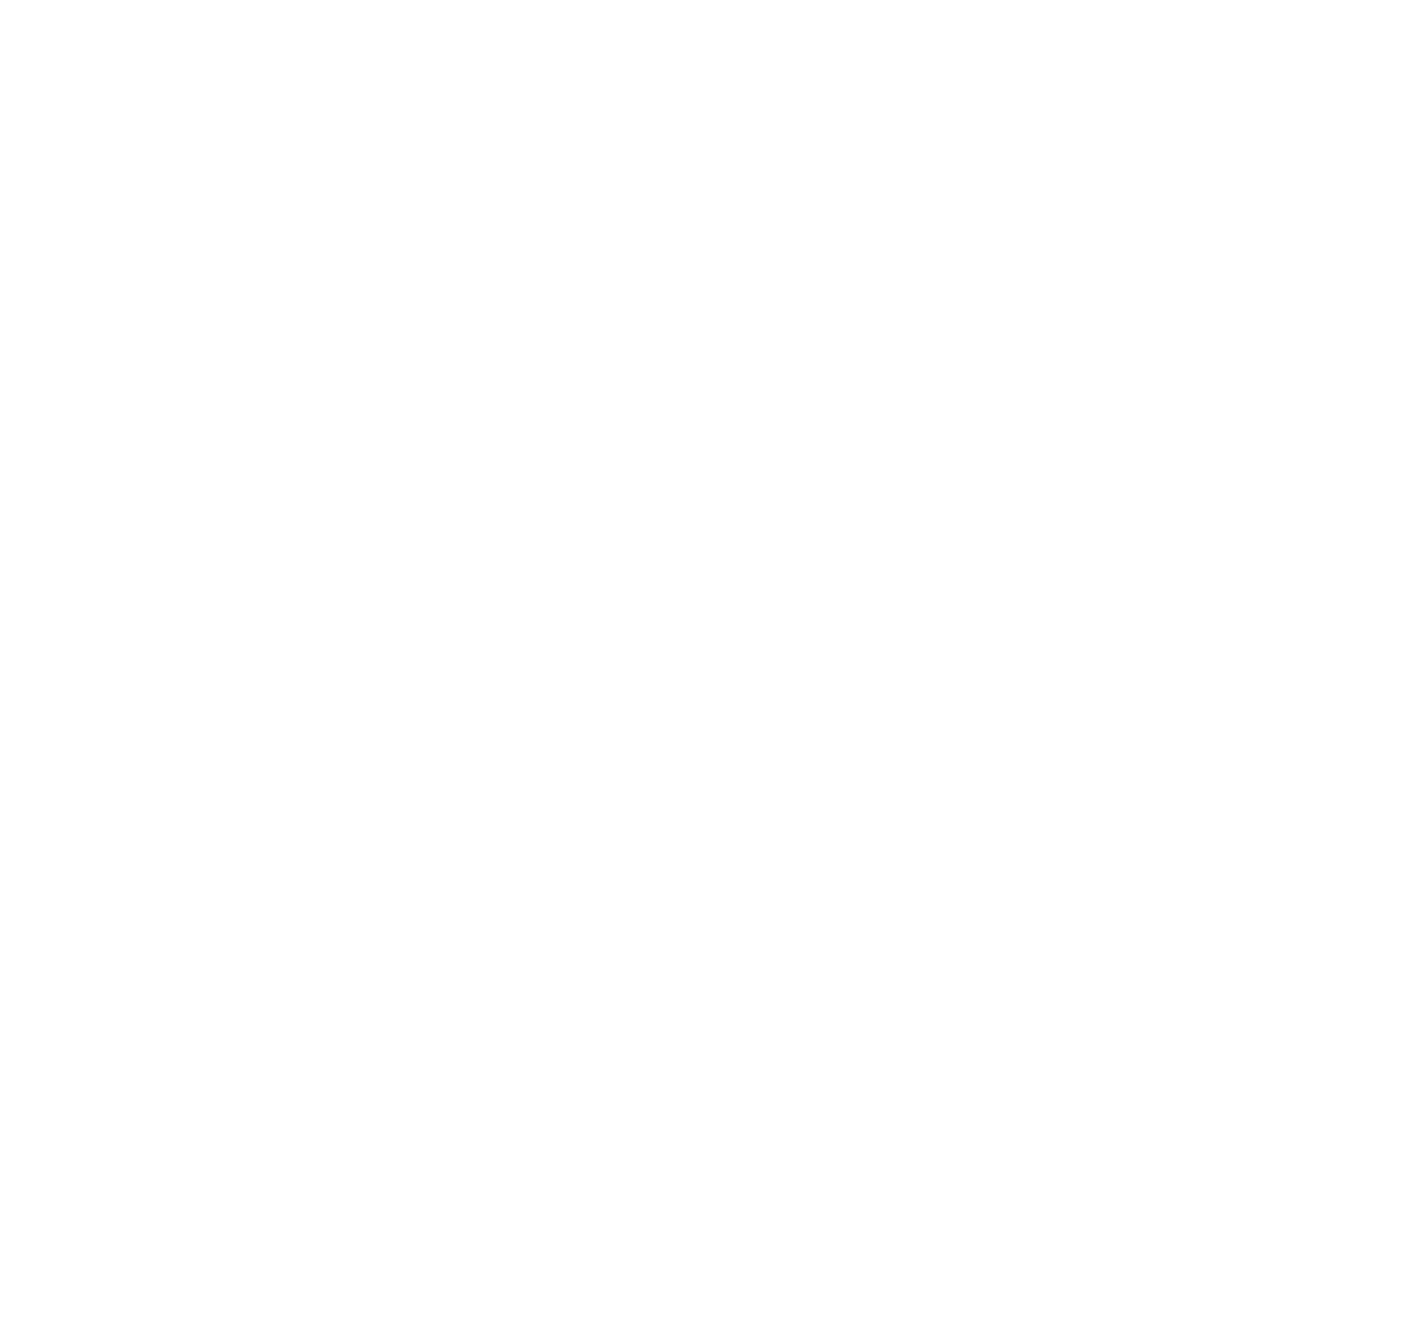 Gotham Coffee Roasters